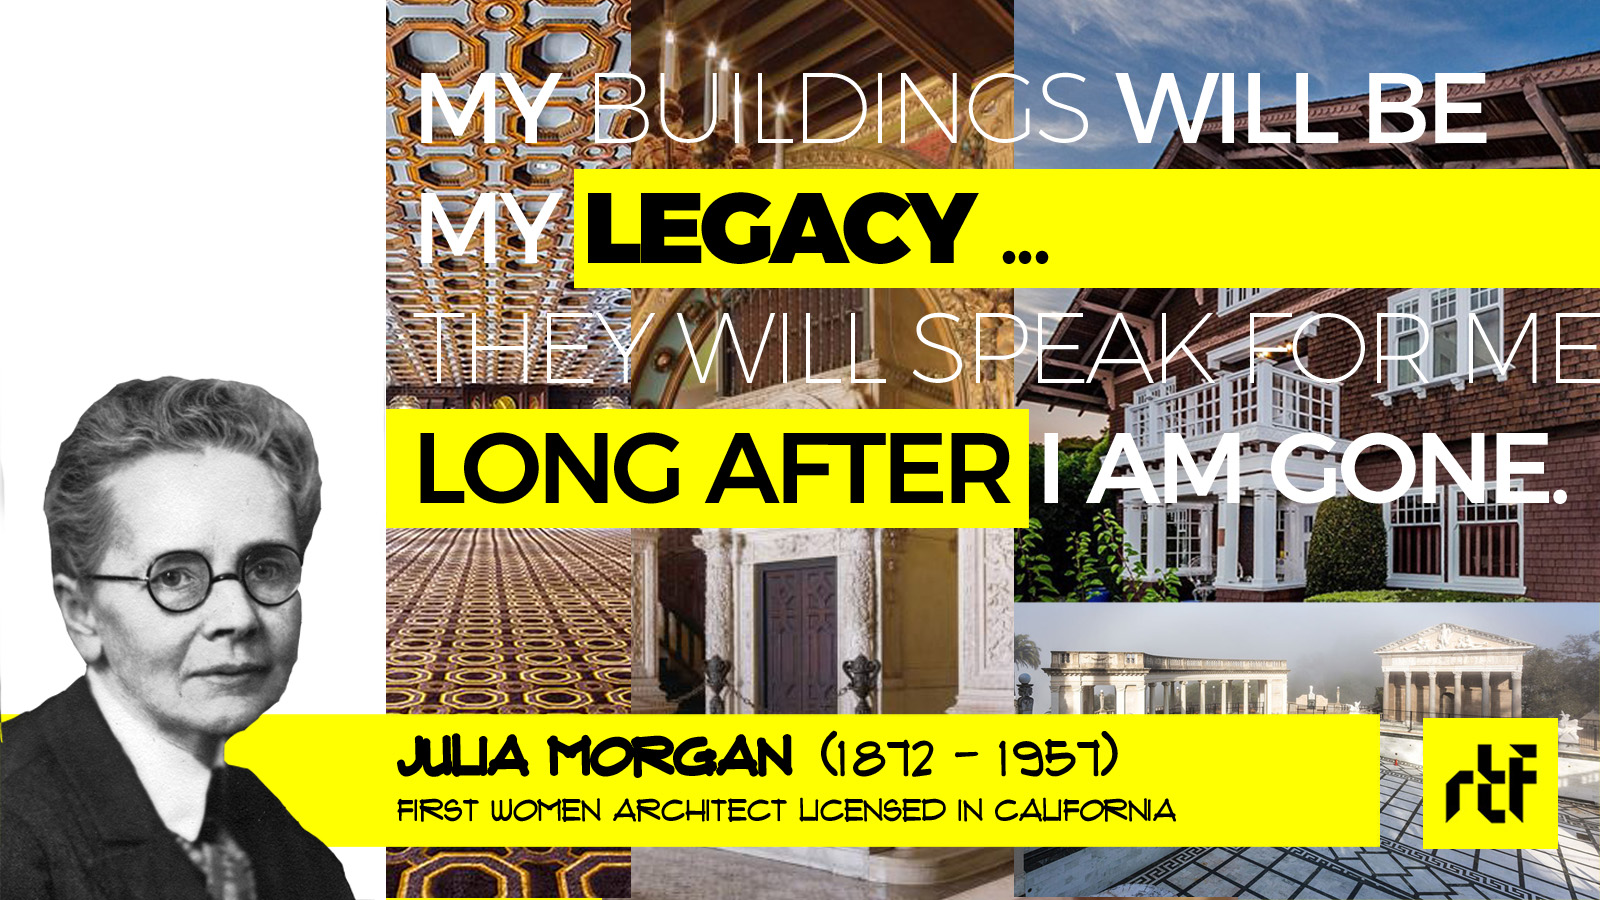 Julia Morgan: The First Female Architect to receive an AIA Gold Medal